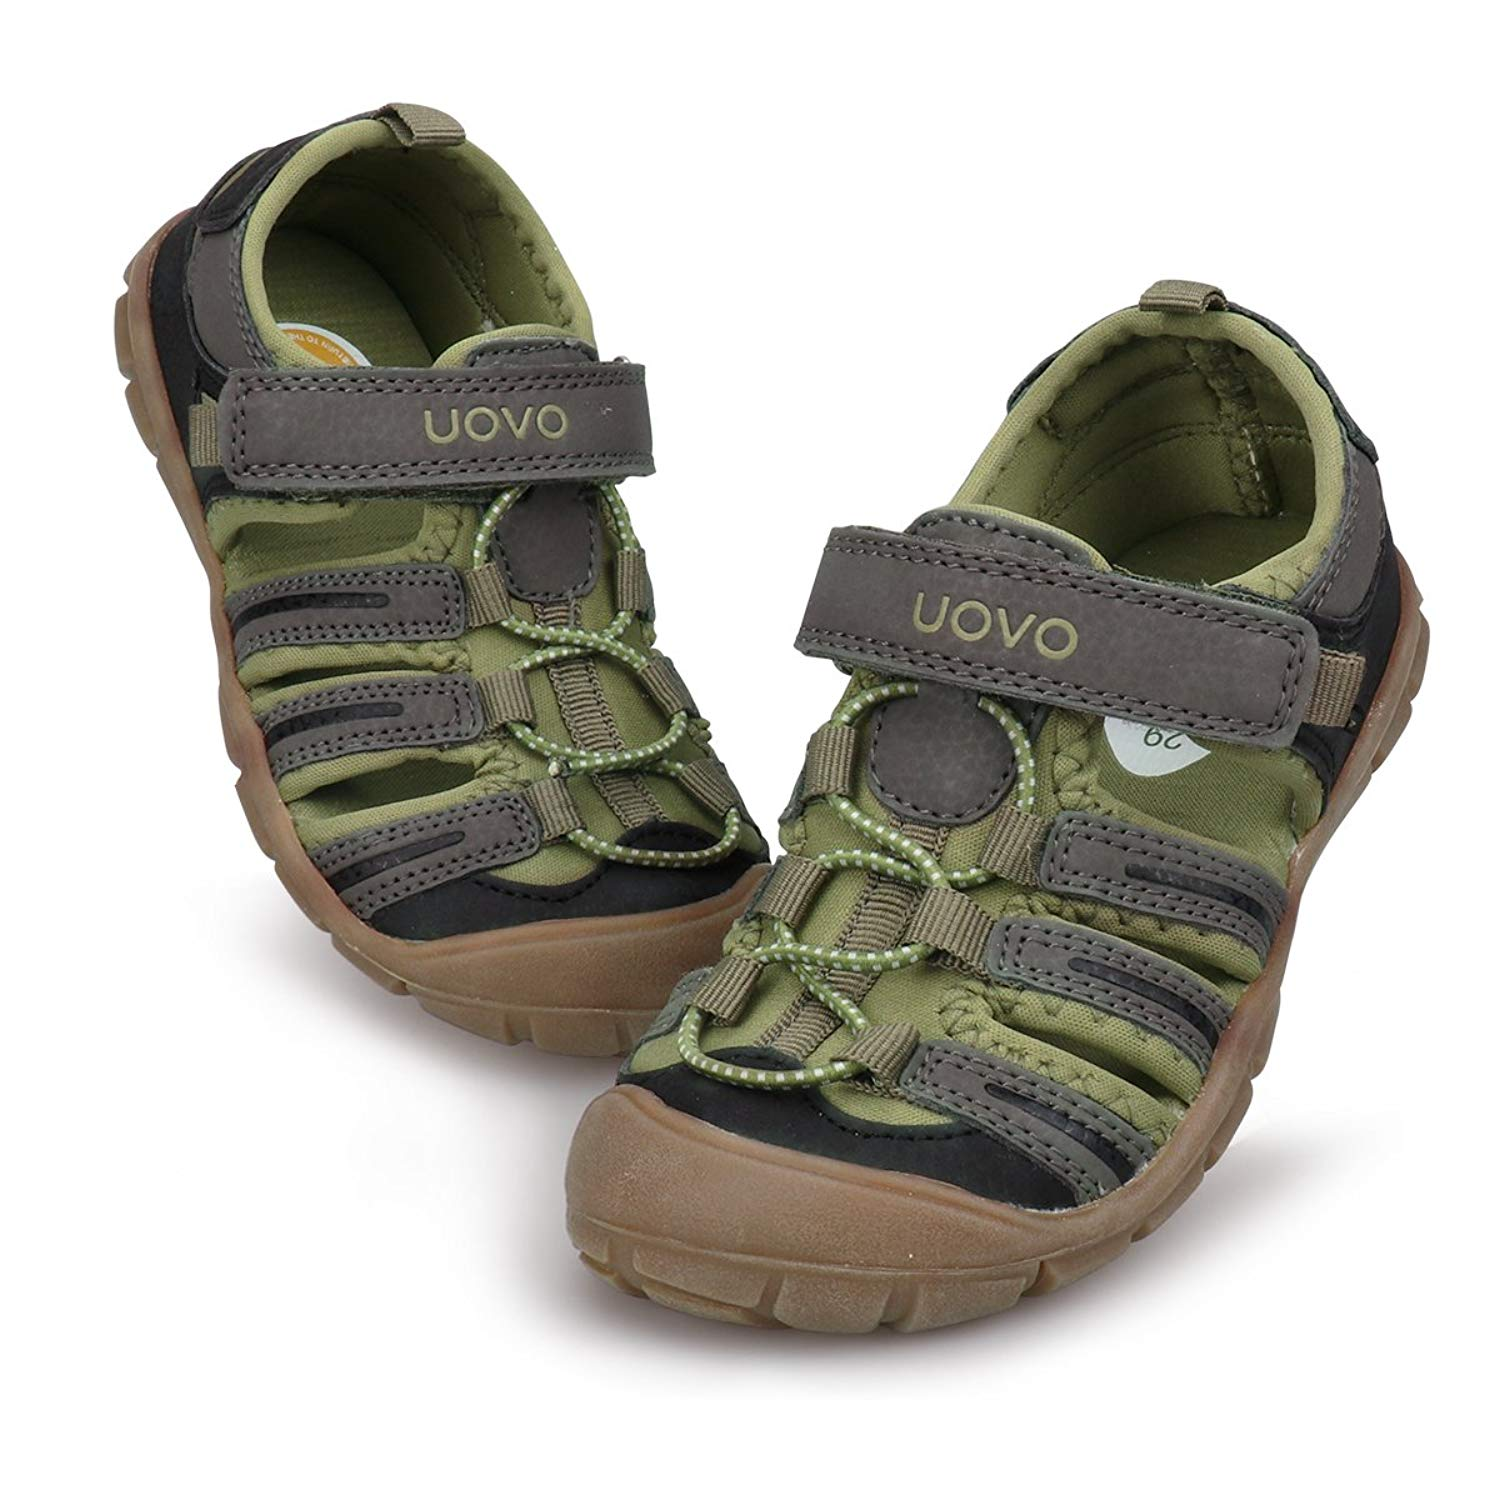 4b0dadd0ad3 Cheap Boys Hiking Sandals, find Boys Hiking Sandals deals on line at ...